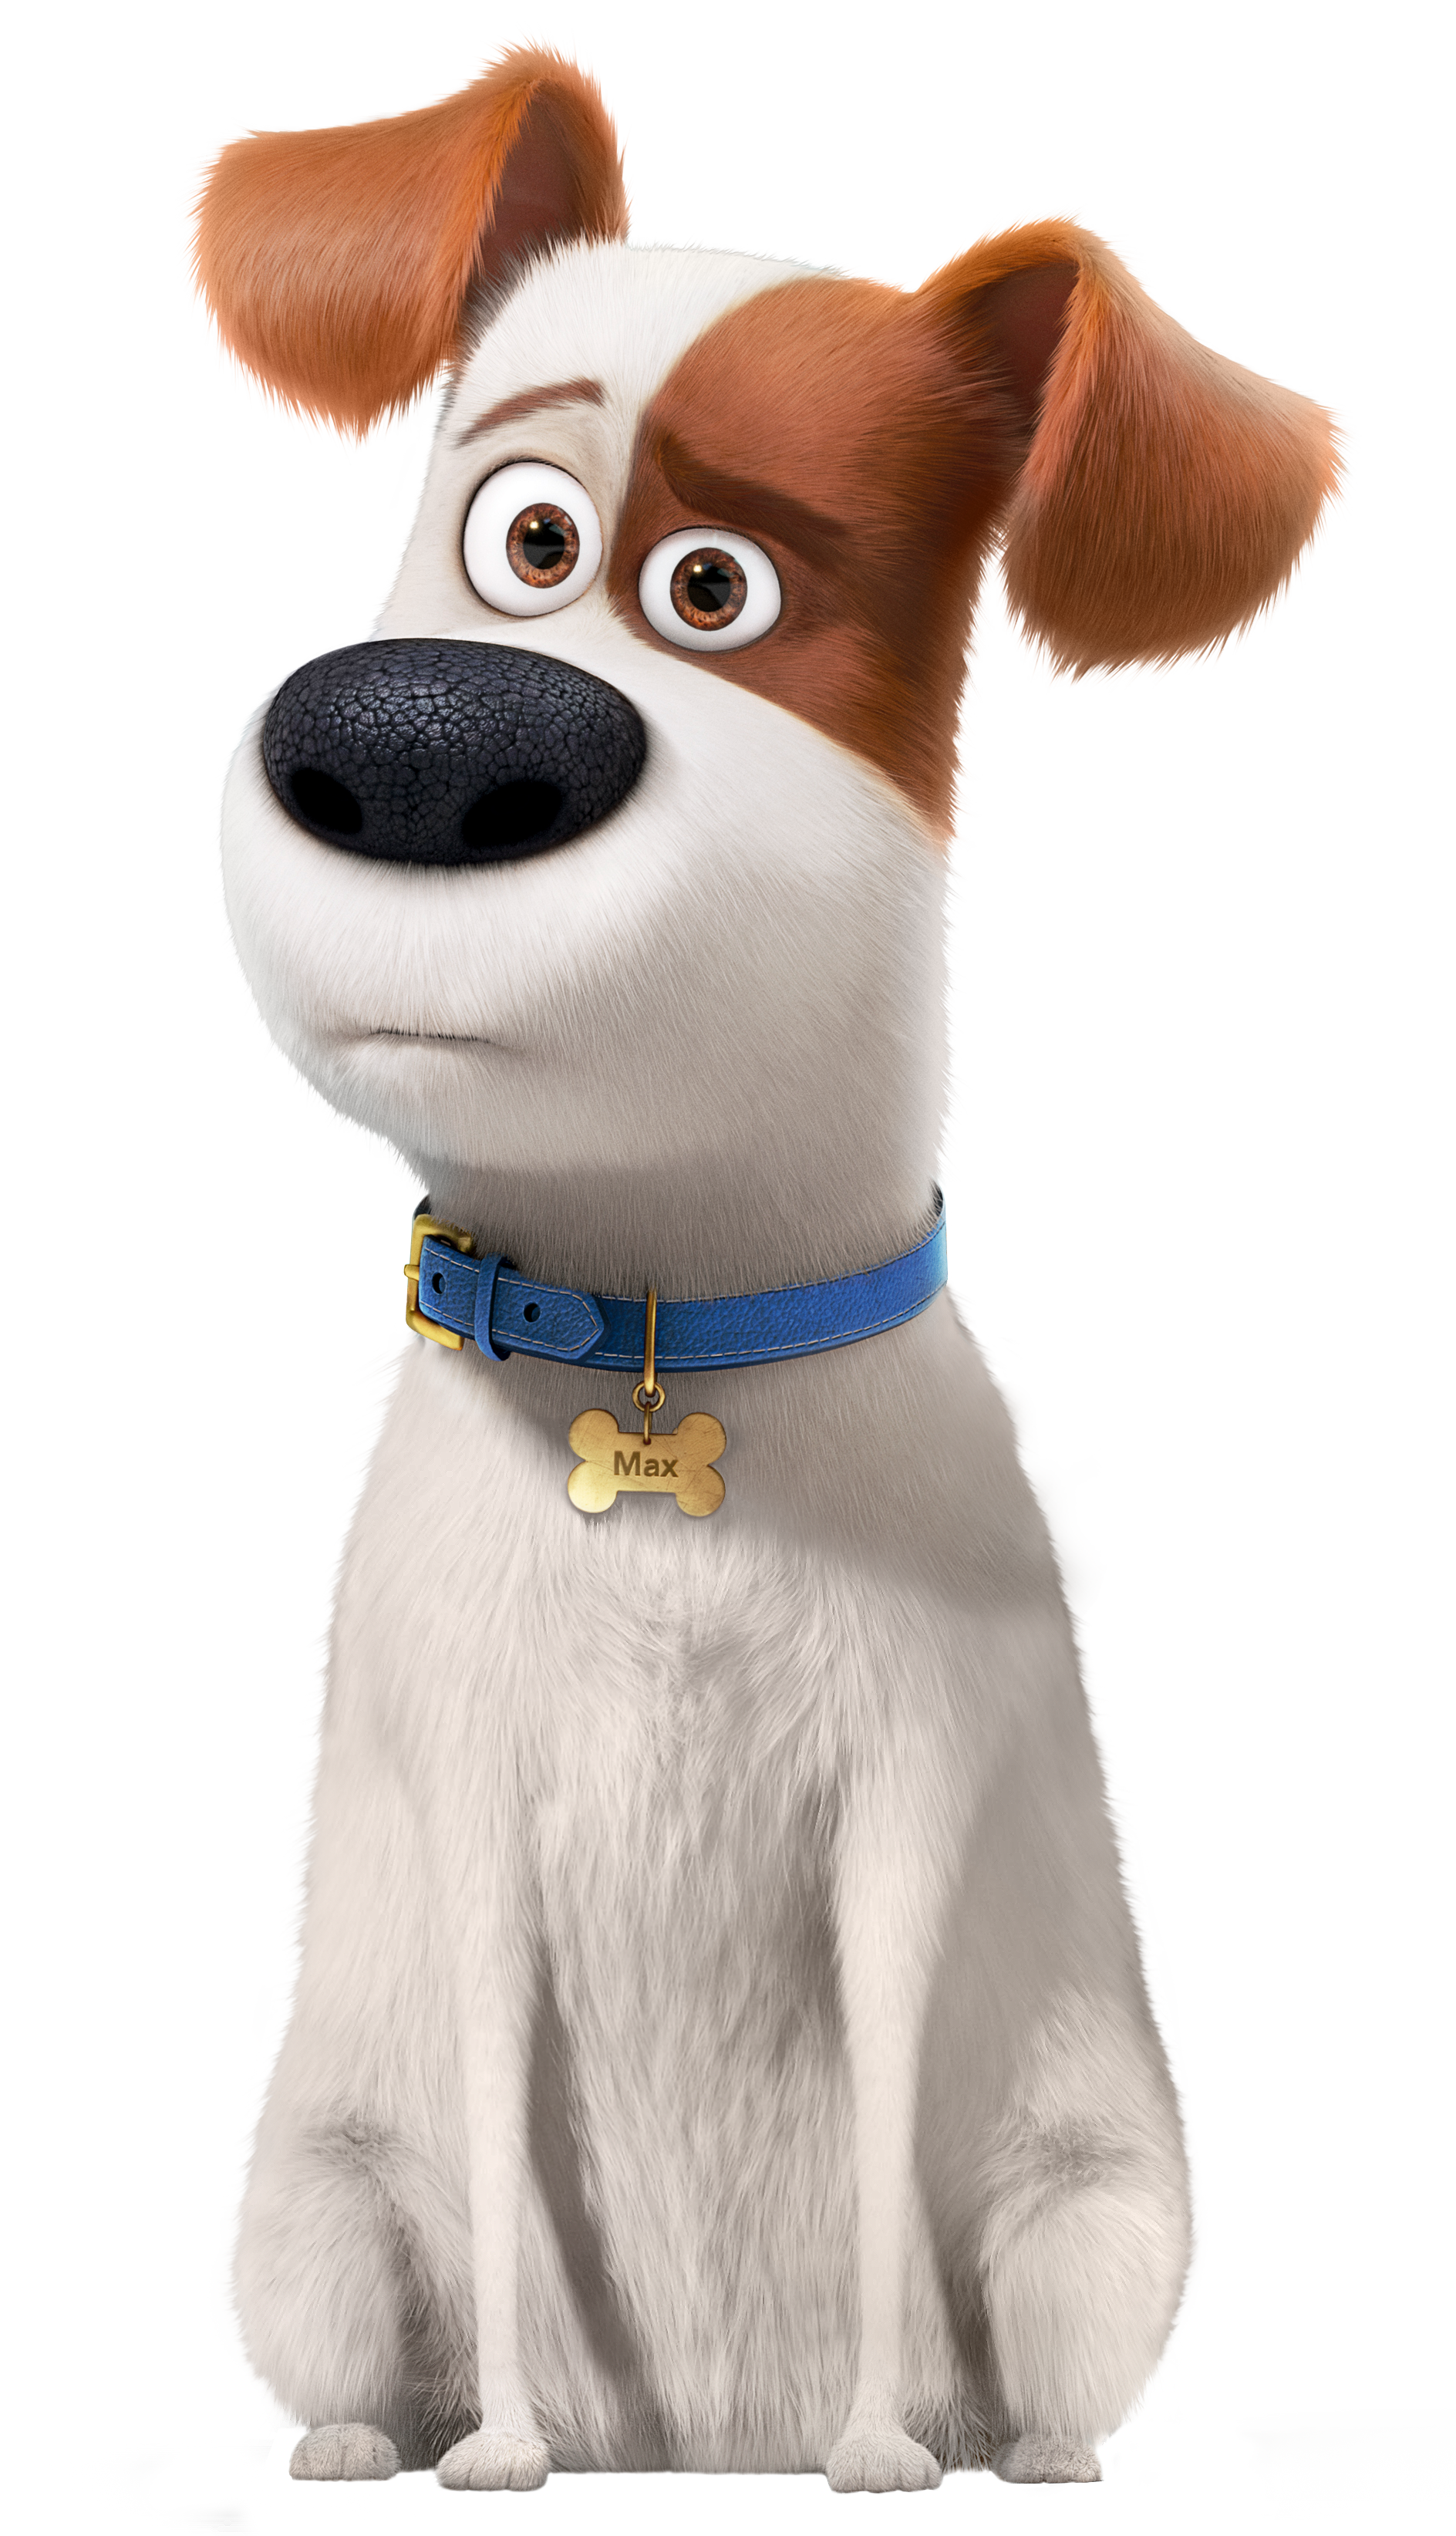 Max the dog clipart banner library The Secret Life of Pets Max Transparent PNG Image | Gallery ... banner library